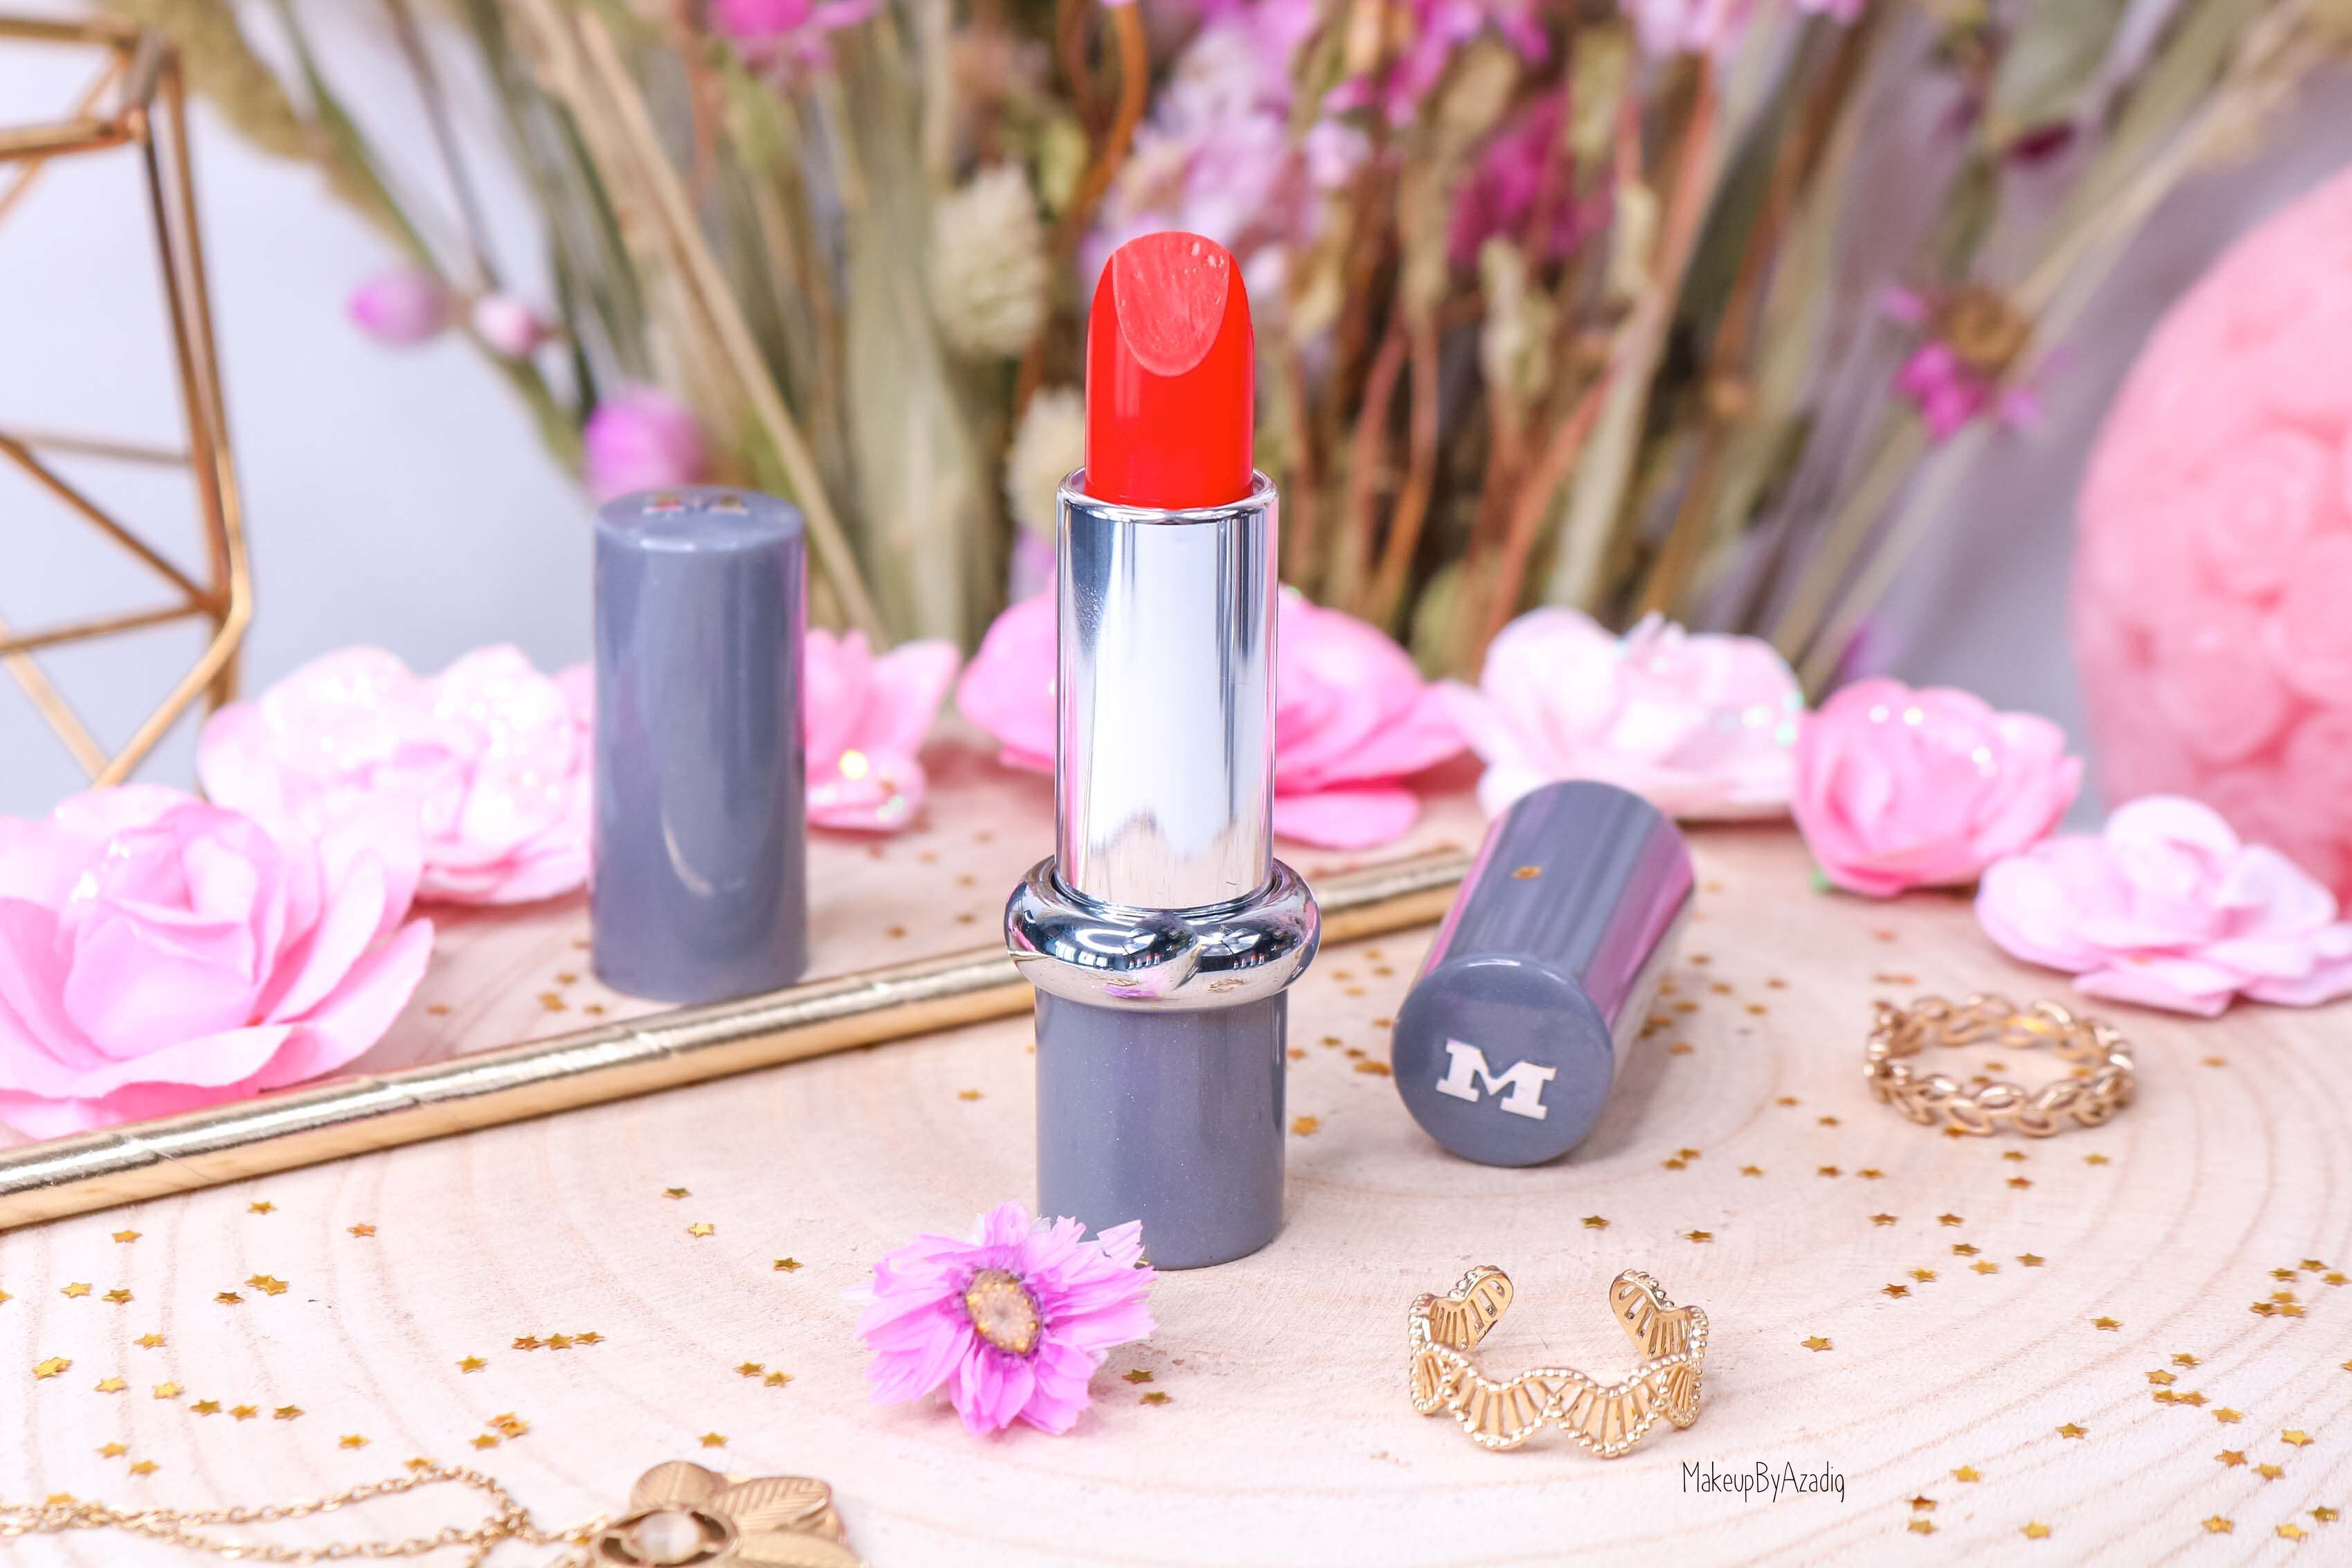 revue-rouge-a-levres-mavala-collection-sunlight-tendance-printemps-ete-2019-2020-monoprix-paris-makeupbyazadig-avis-prix-swatch-scarlet-red